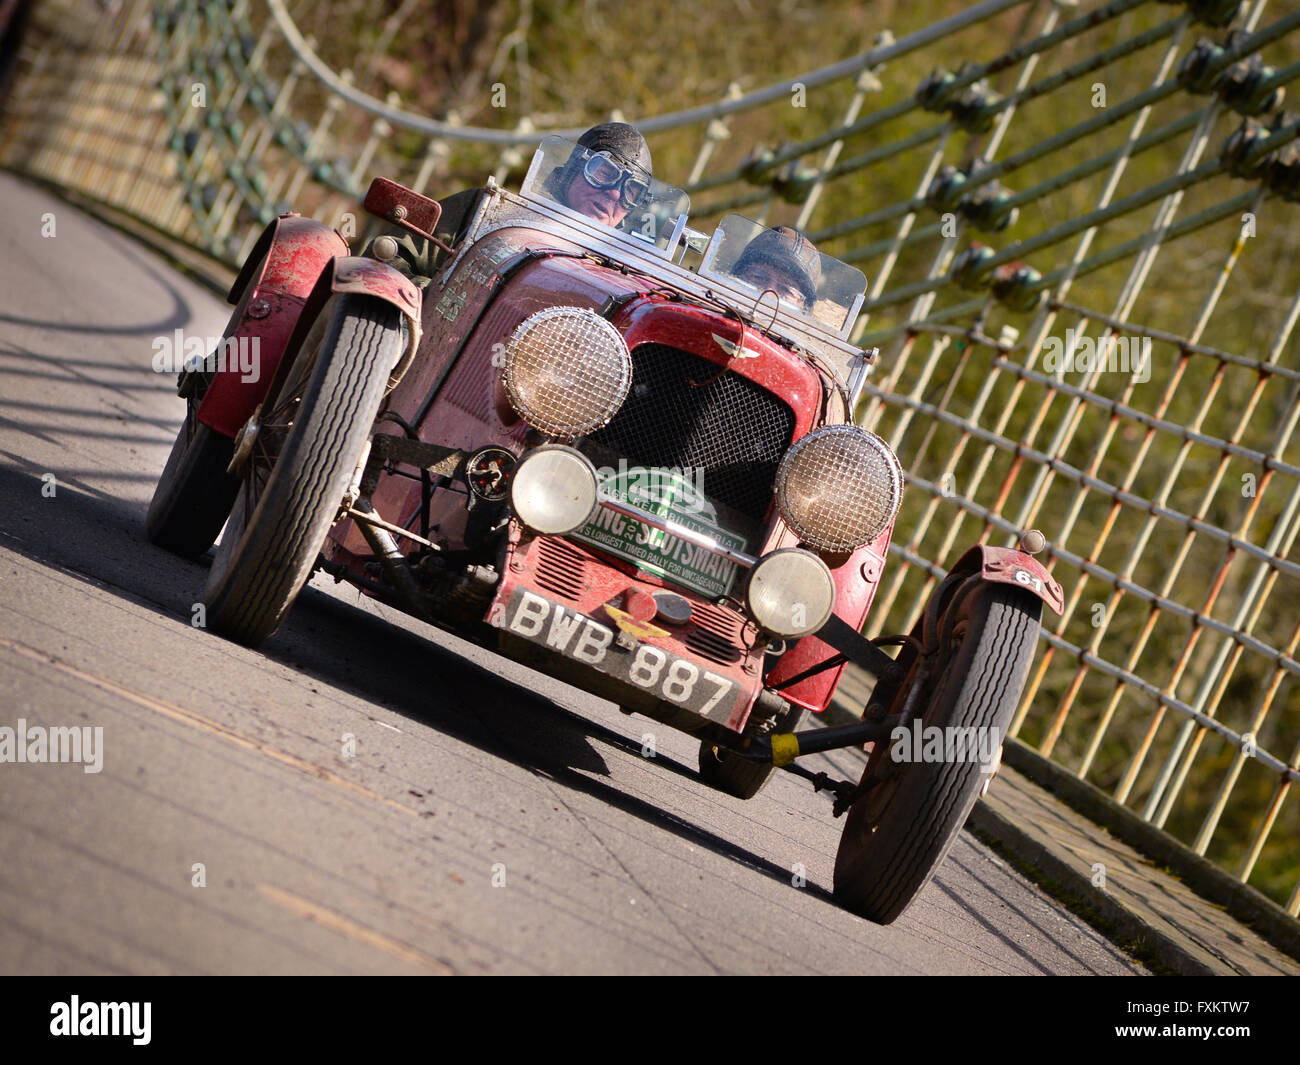 Scottish Border, UK. 16th April, 2016. 8th Flying Scotsman Rally. Alan Beardshaw and Peter Fletcher in 1934 Aston - Stock Image